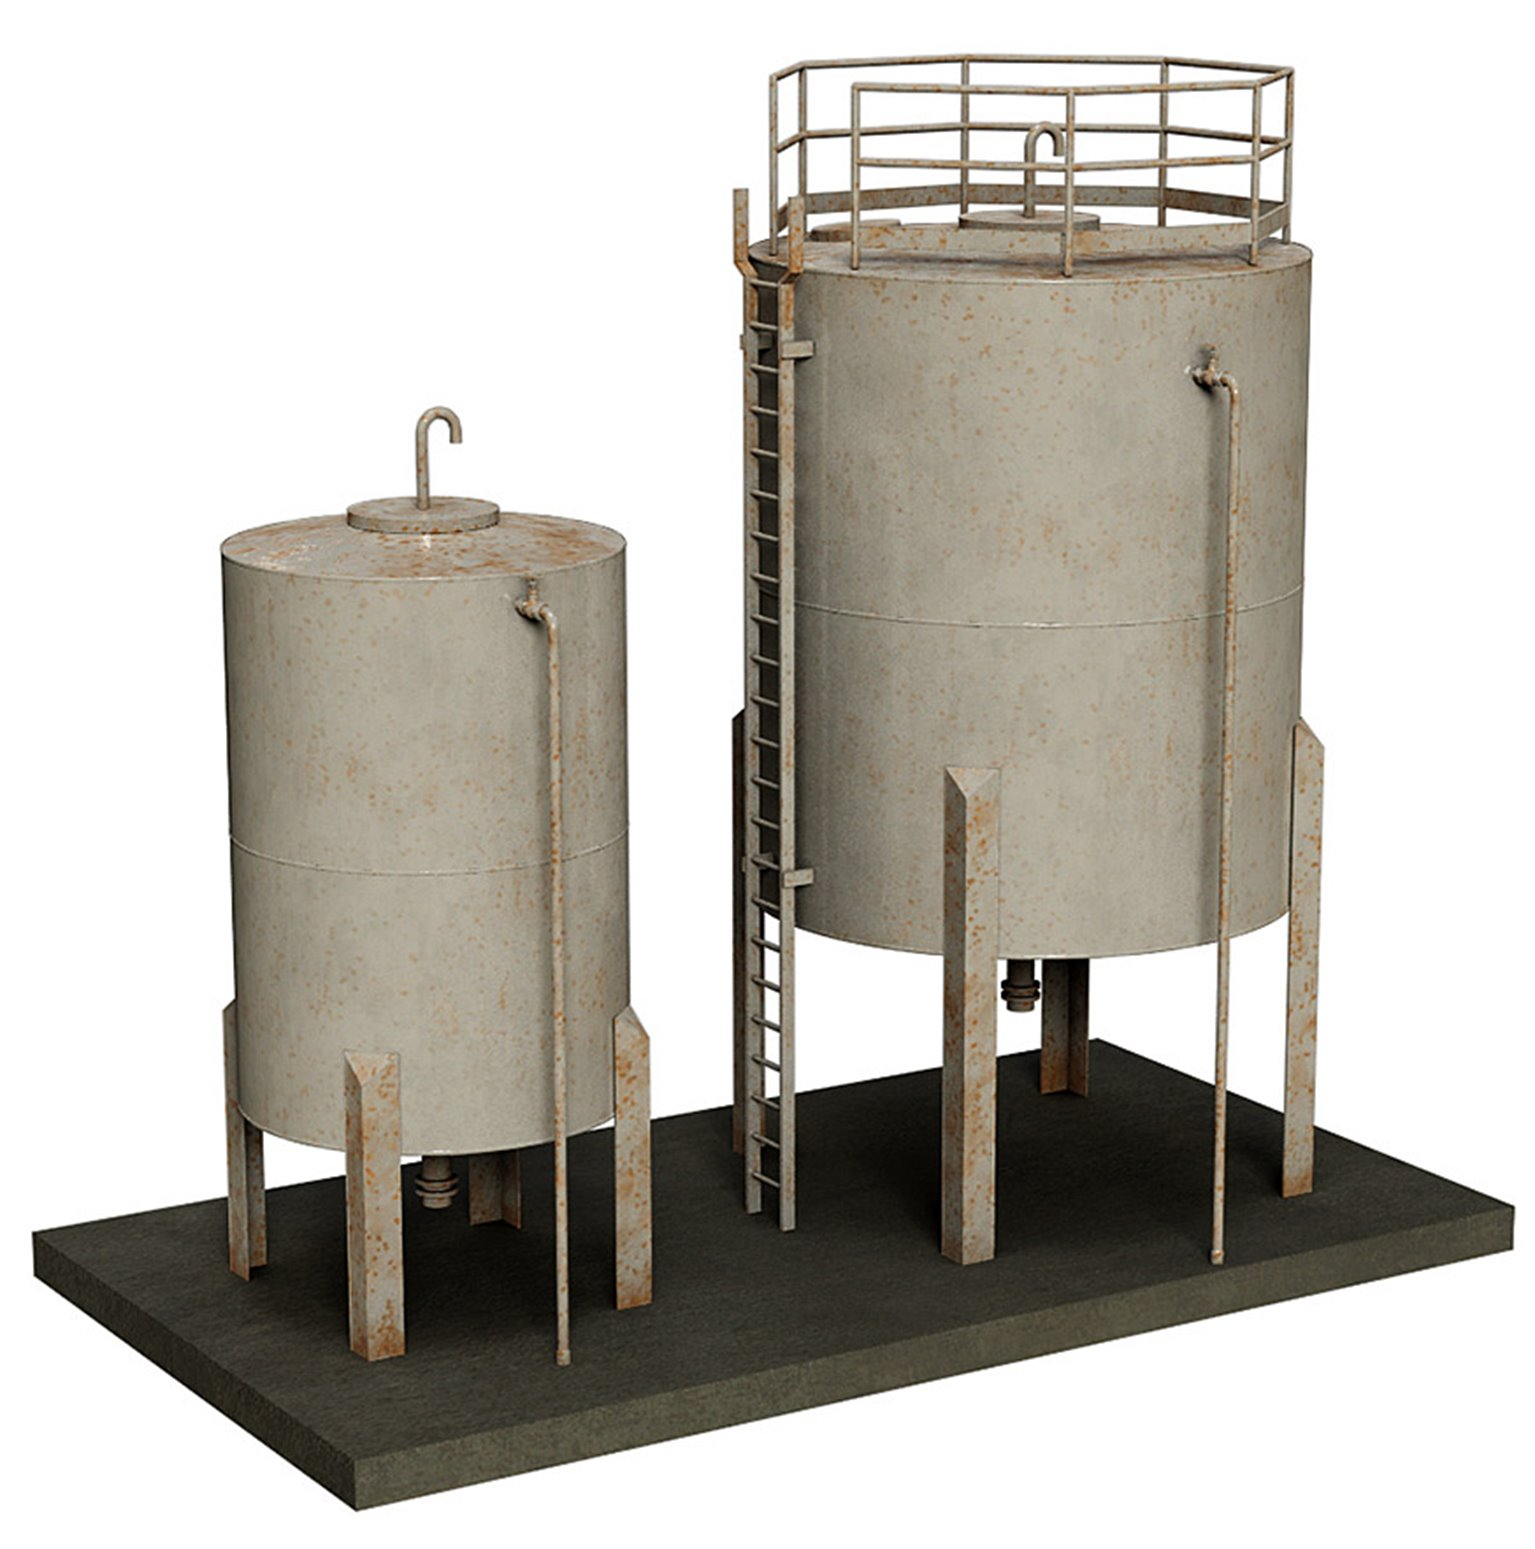 Depot Storage tanks